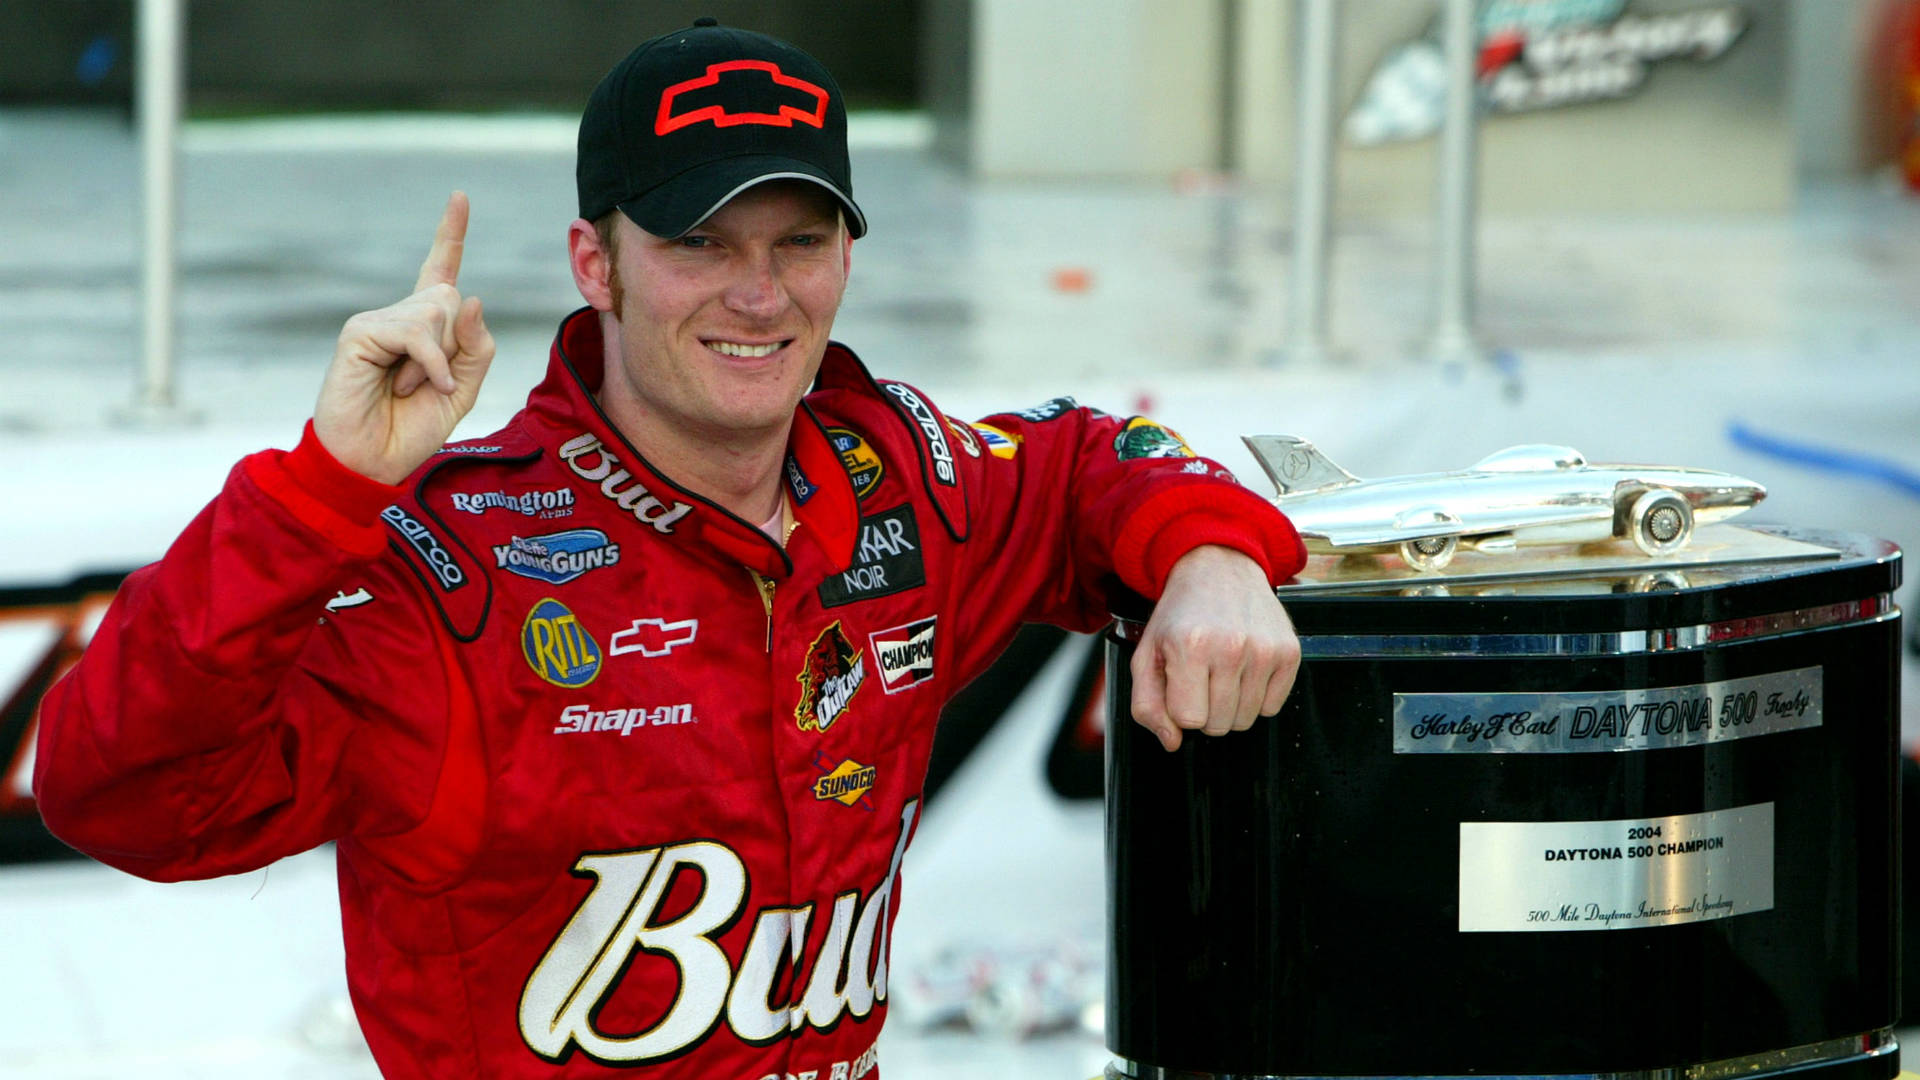 Budweiser releases dramatic tribute to Dale Earnhardt Jr.